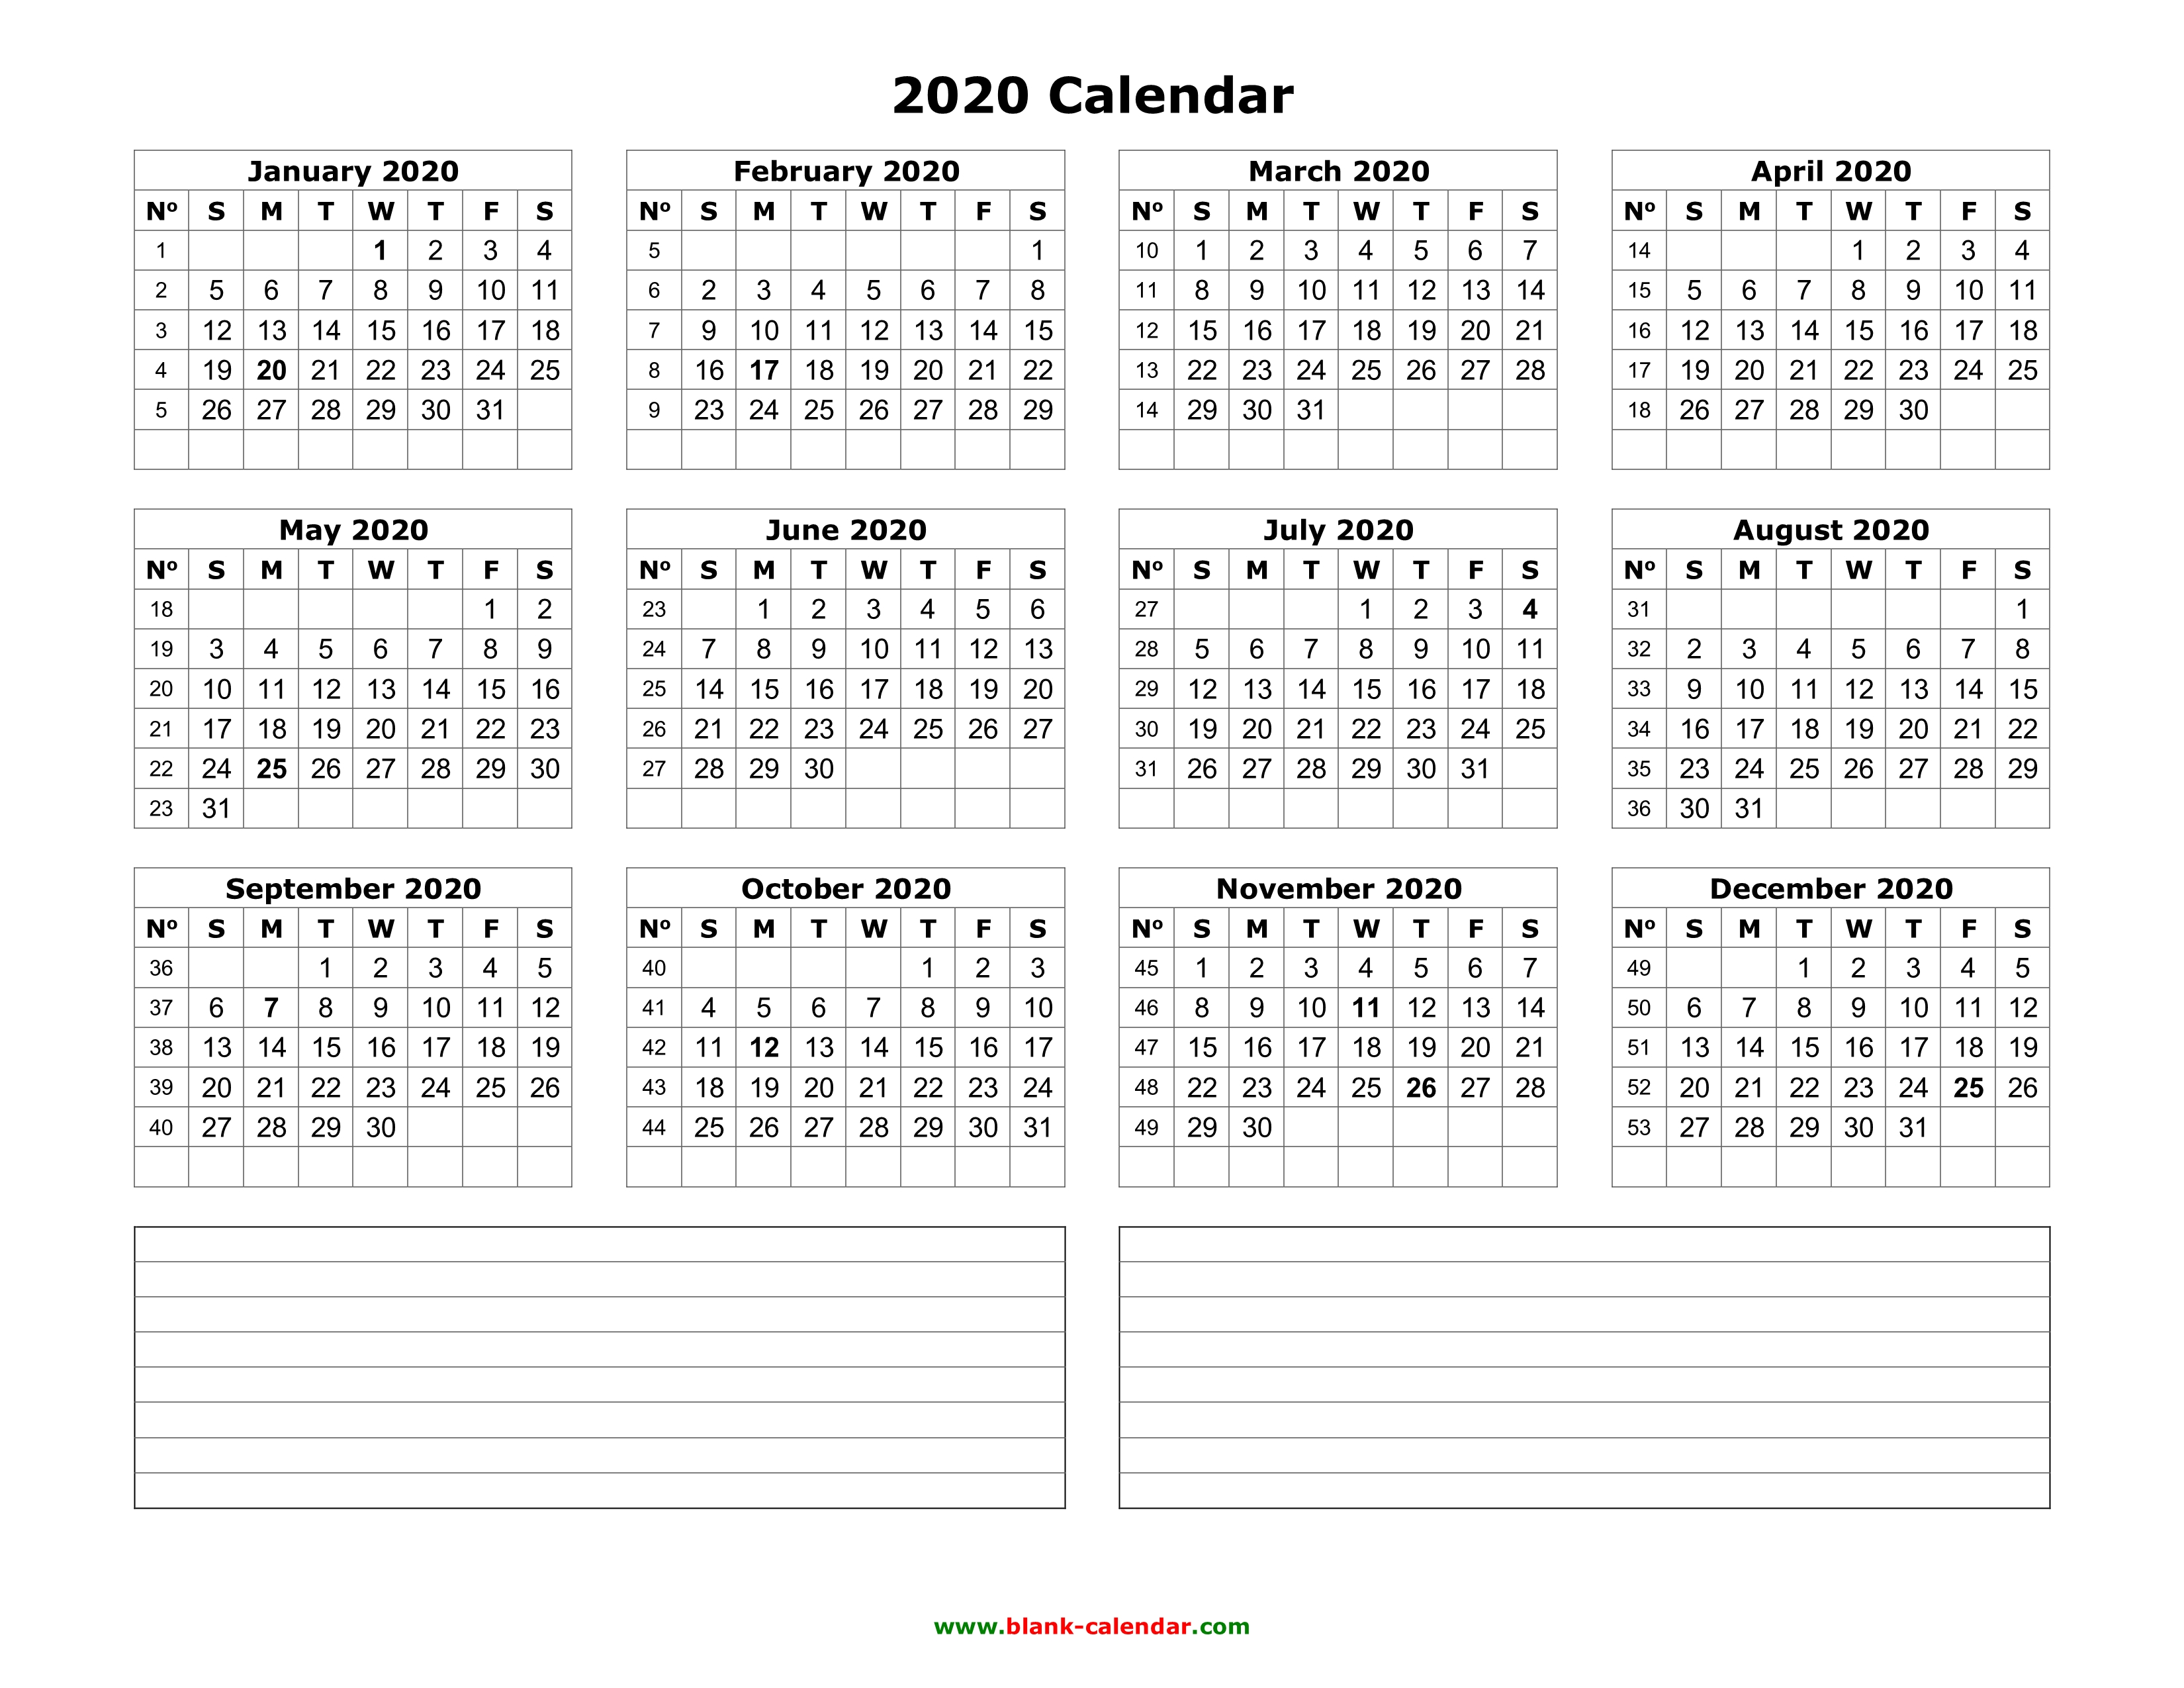 December 2020 Calendar Printable, 123 Yearly Calendar 2020 | Free Download and Print